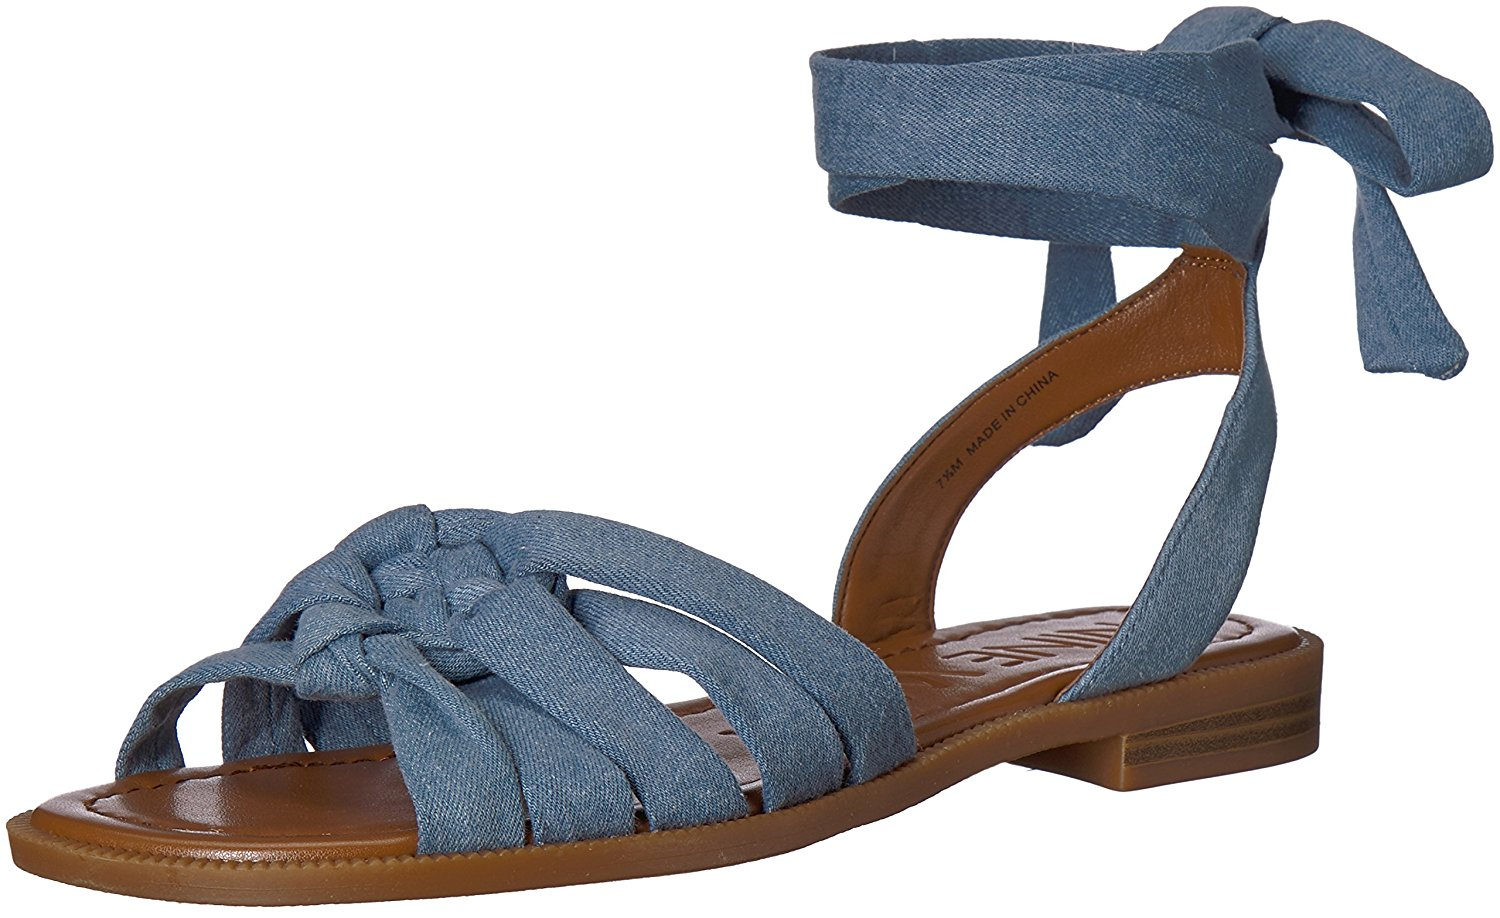 bb78aed9e7d1b5 Blue Nine West Women s Sandals With Free Shipping - Sears